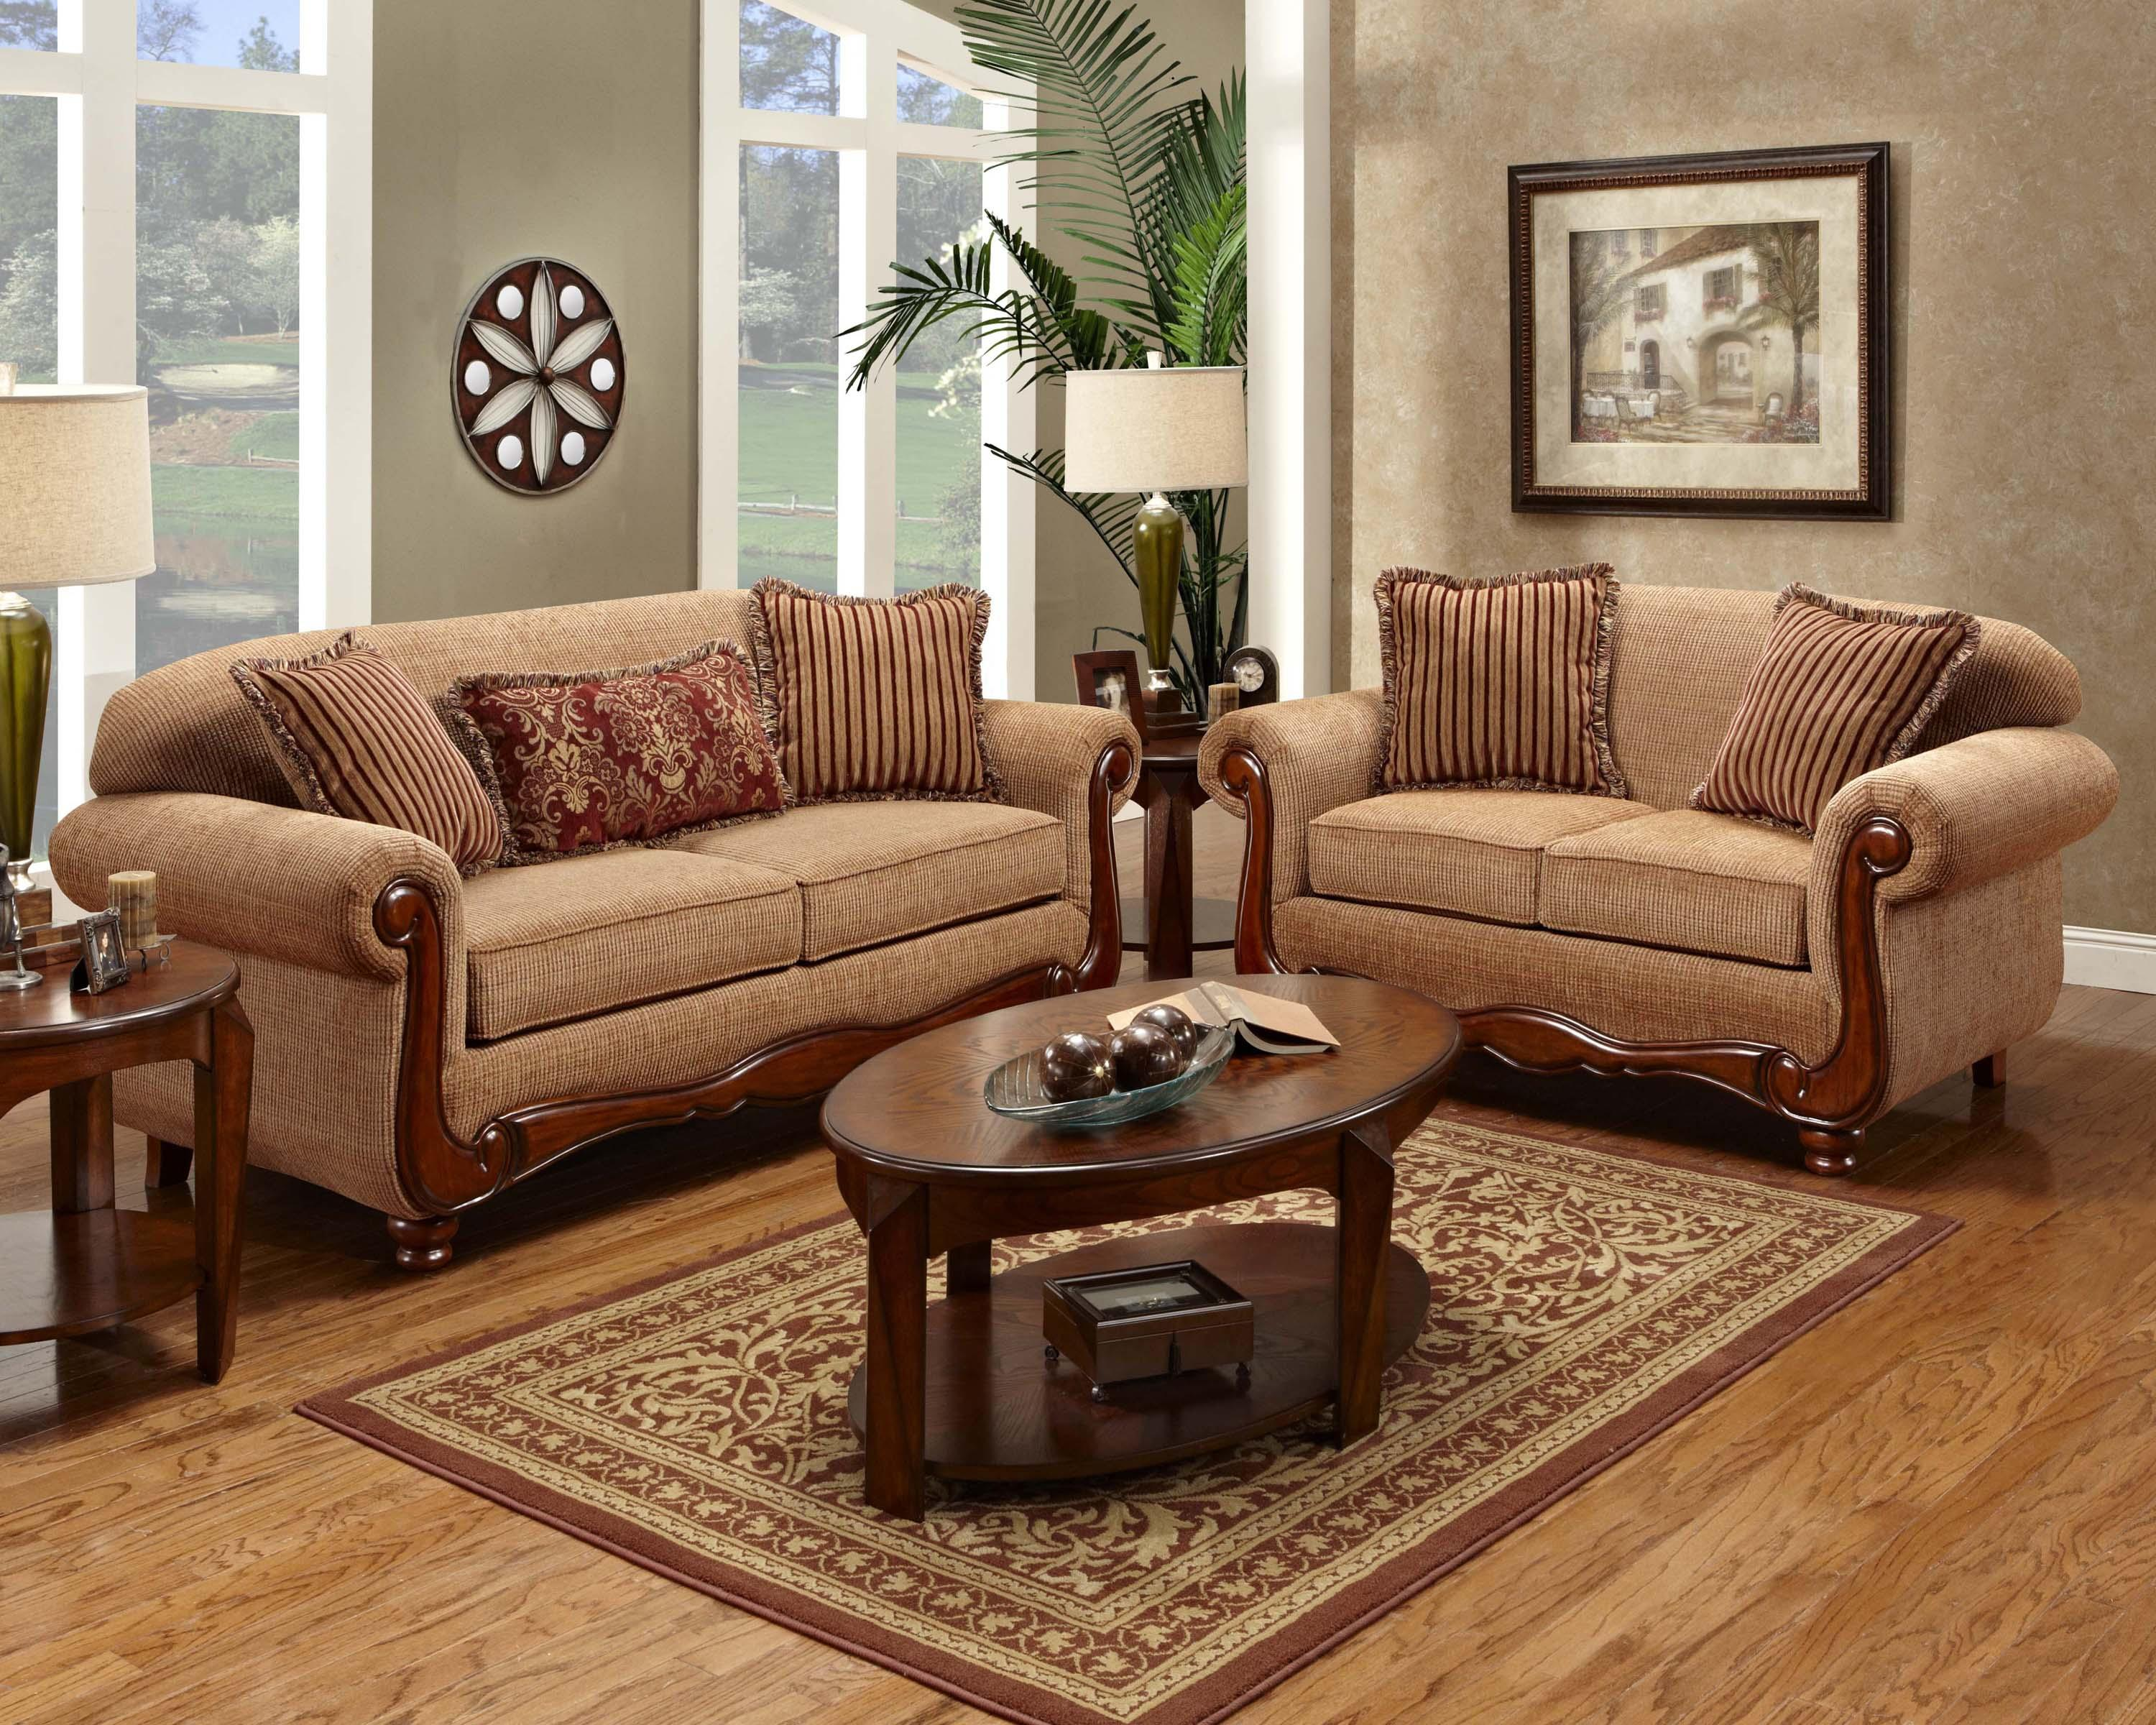 Washington Furniture Traditional Sofa with Rolled Arms